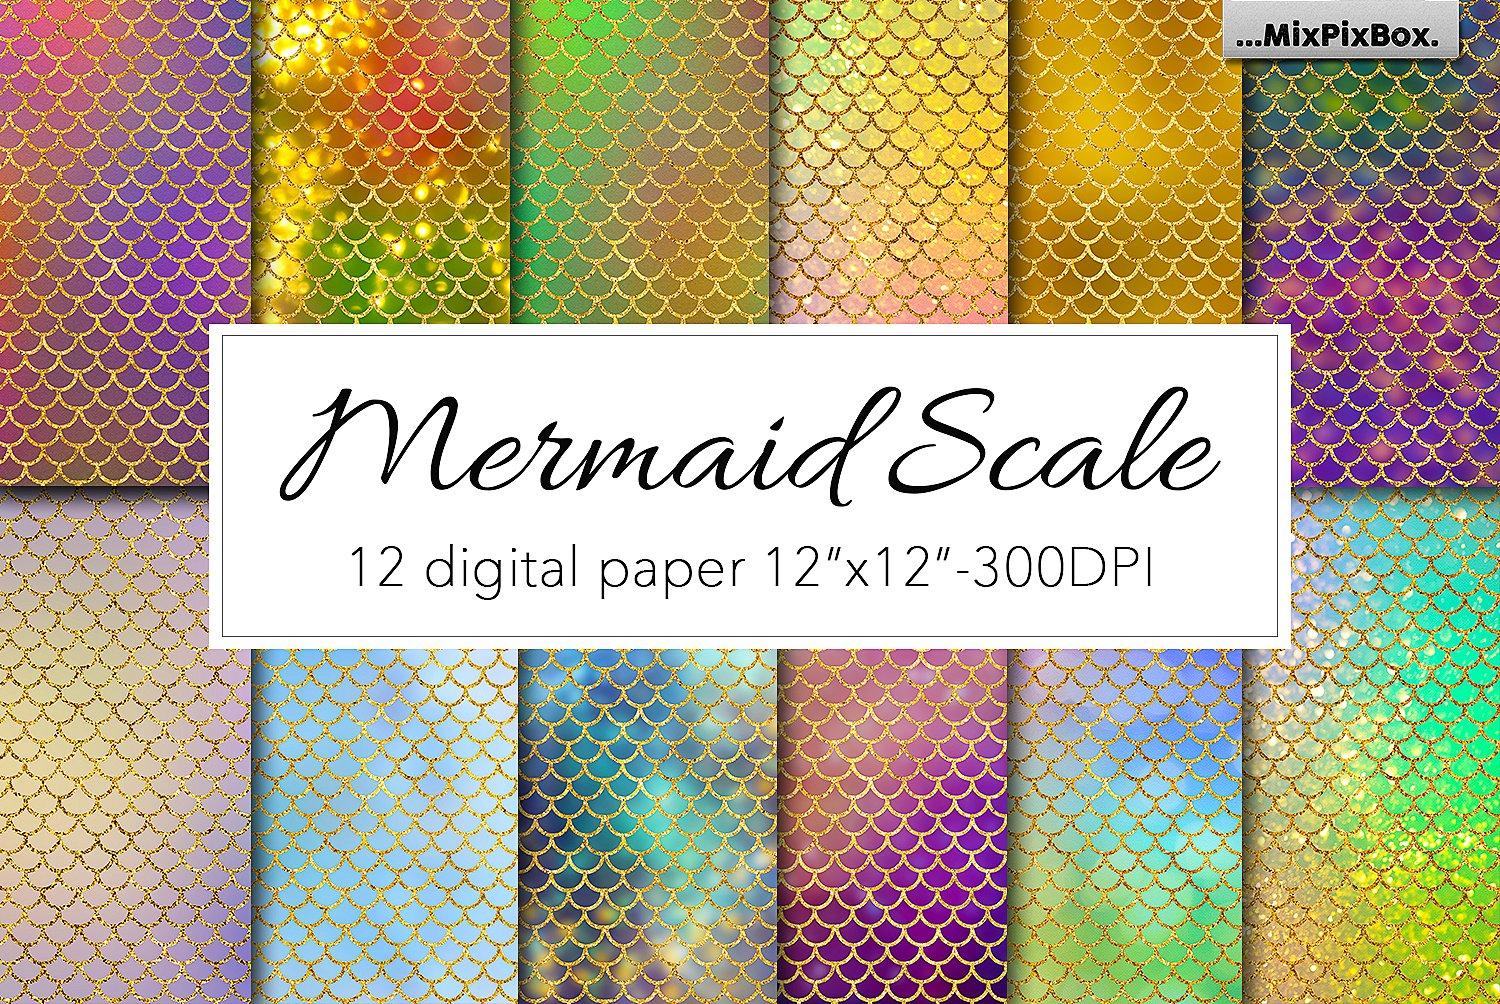 mermaid-scale-cover